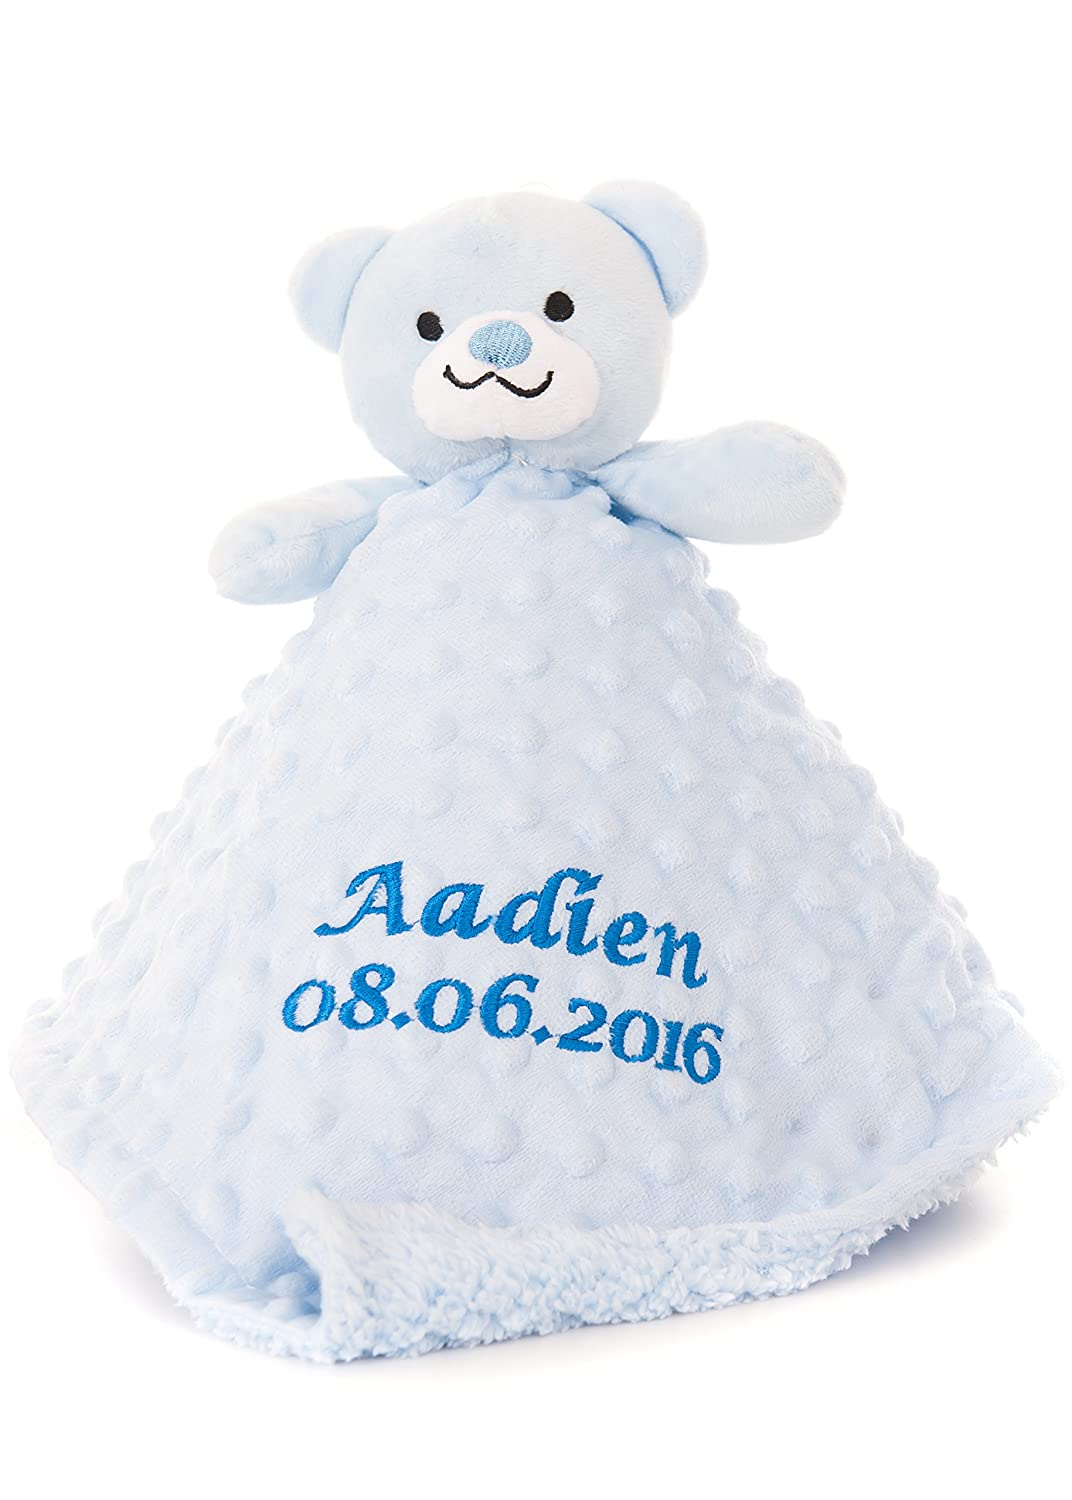 Personalised Embroidered Boy's Baby Comforter Toy Teddy Gift Hoolaroo 5060242507939